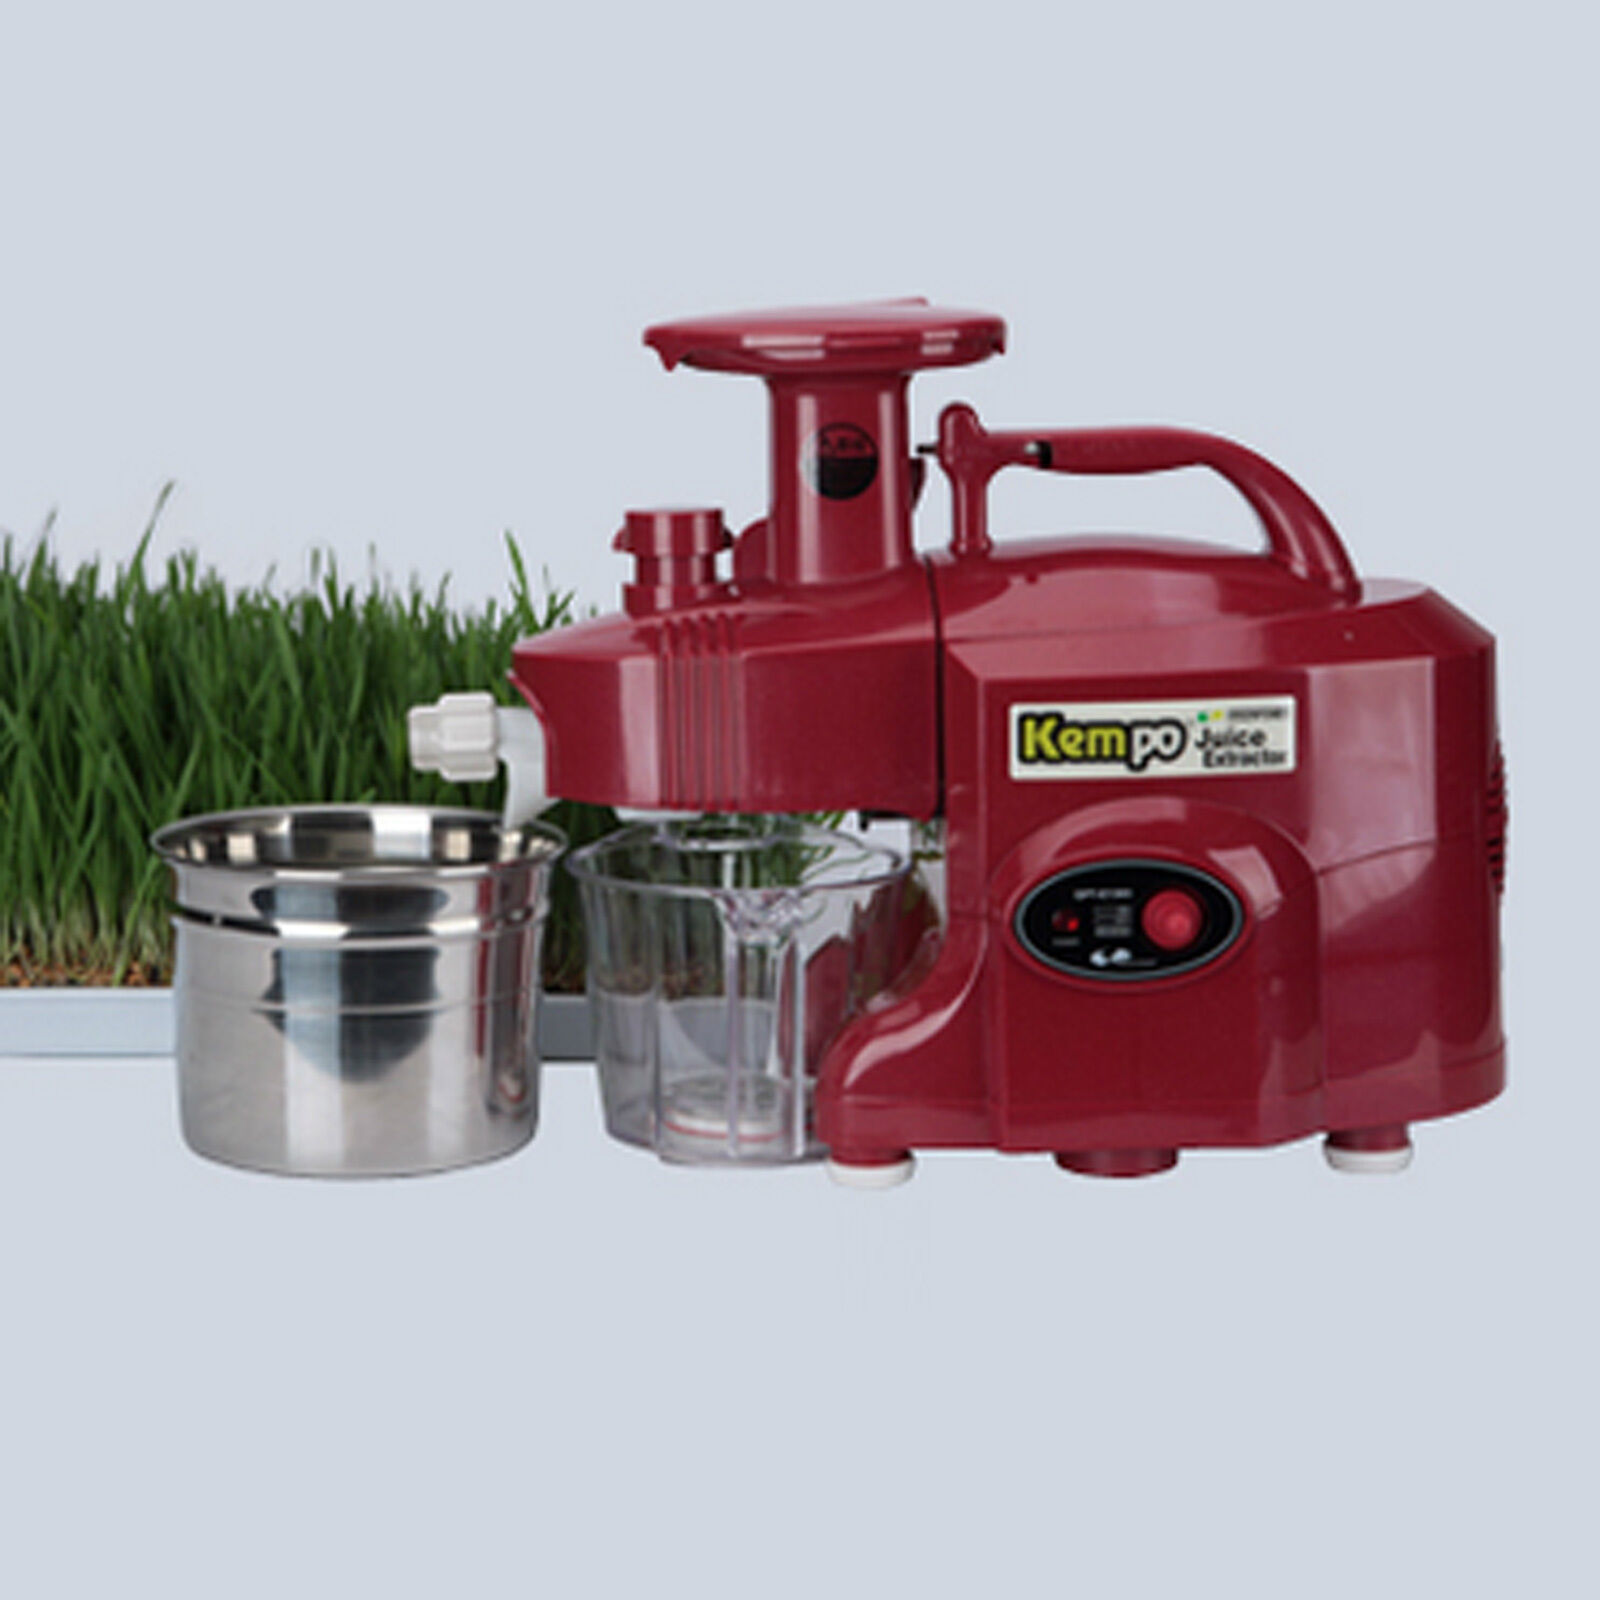 Nouveau vert POWER KEMPO GPT-E1303S standard-Type Twin Gear Juicer-Rouge